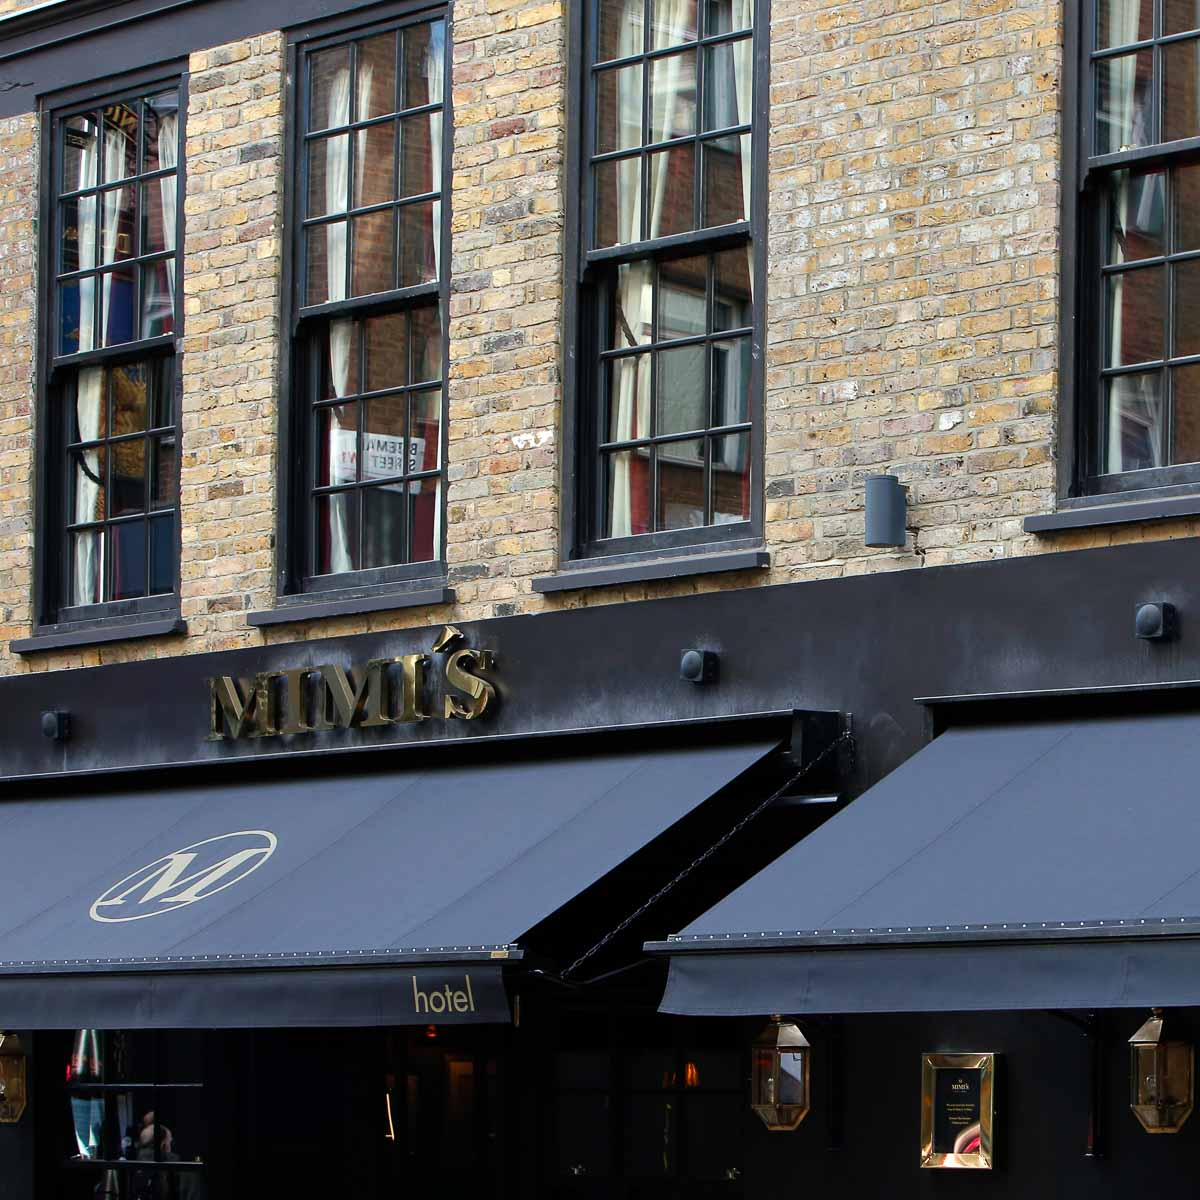 Mimis Hotel Soho in London-7